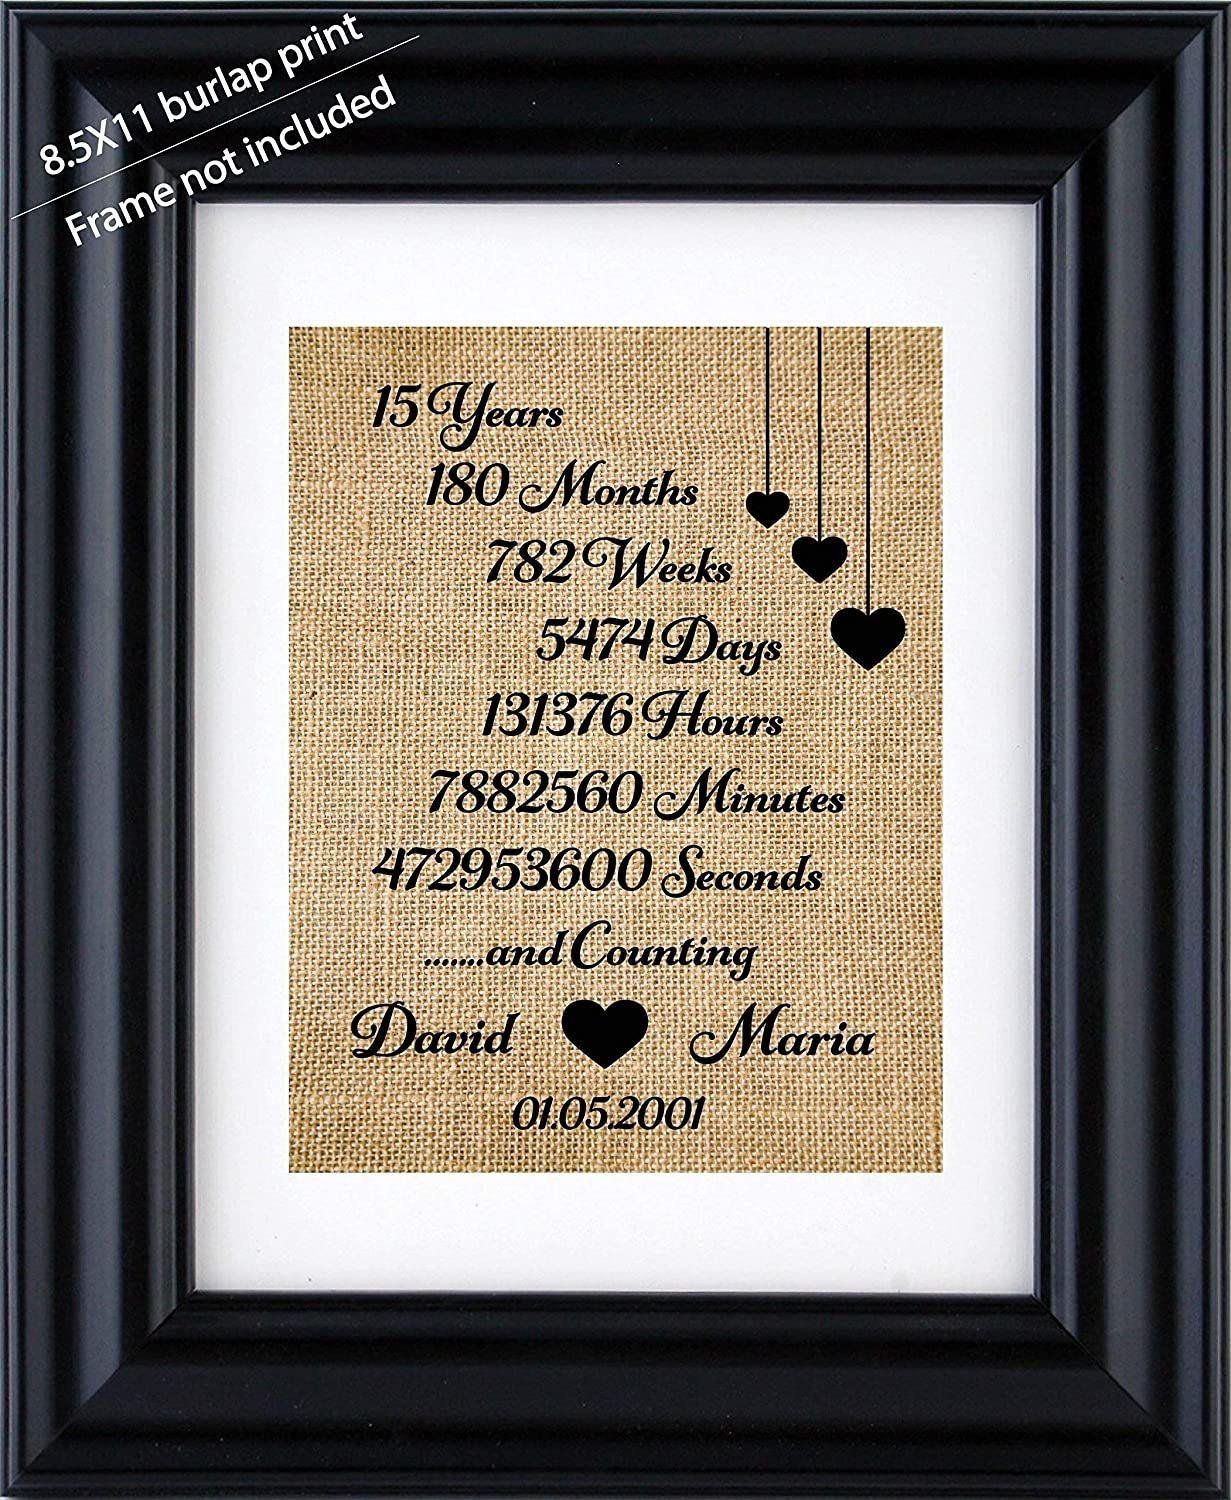 30th Wedding Anniversary Gift.15th Anniversary Gifts Personalized Anniversary Burlap Print For 1st 5th 10th 20th 15th 25th 30th Wedding Anniversary Wedding Anniversary Gift For